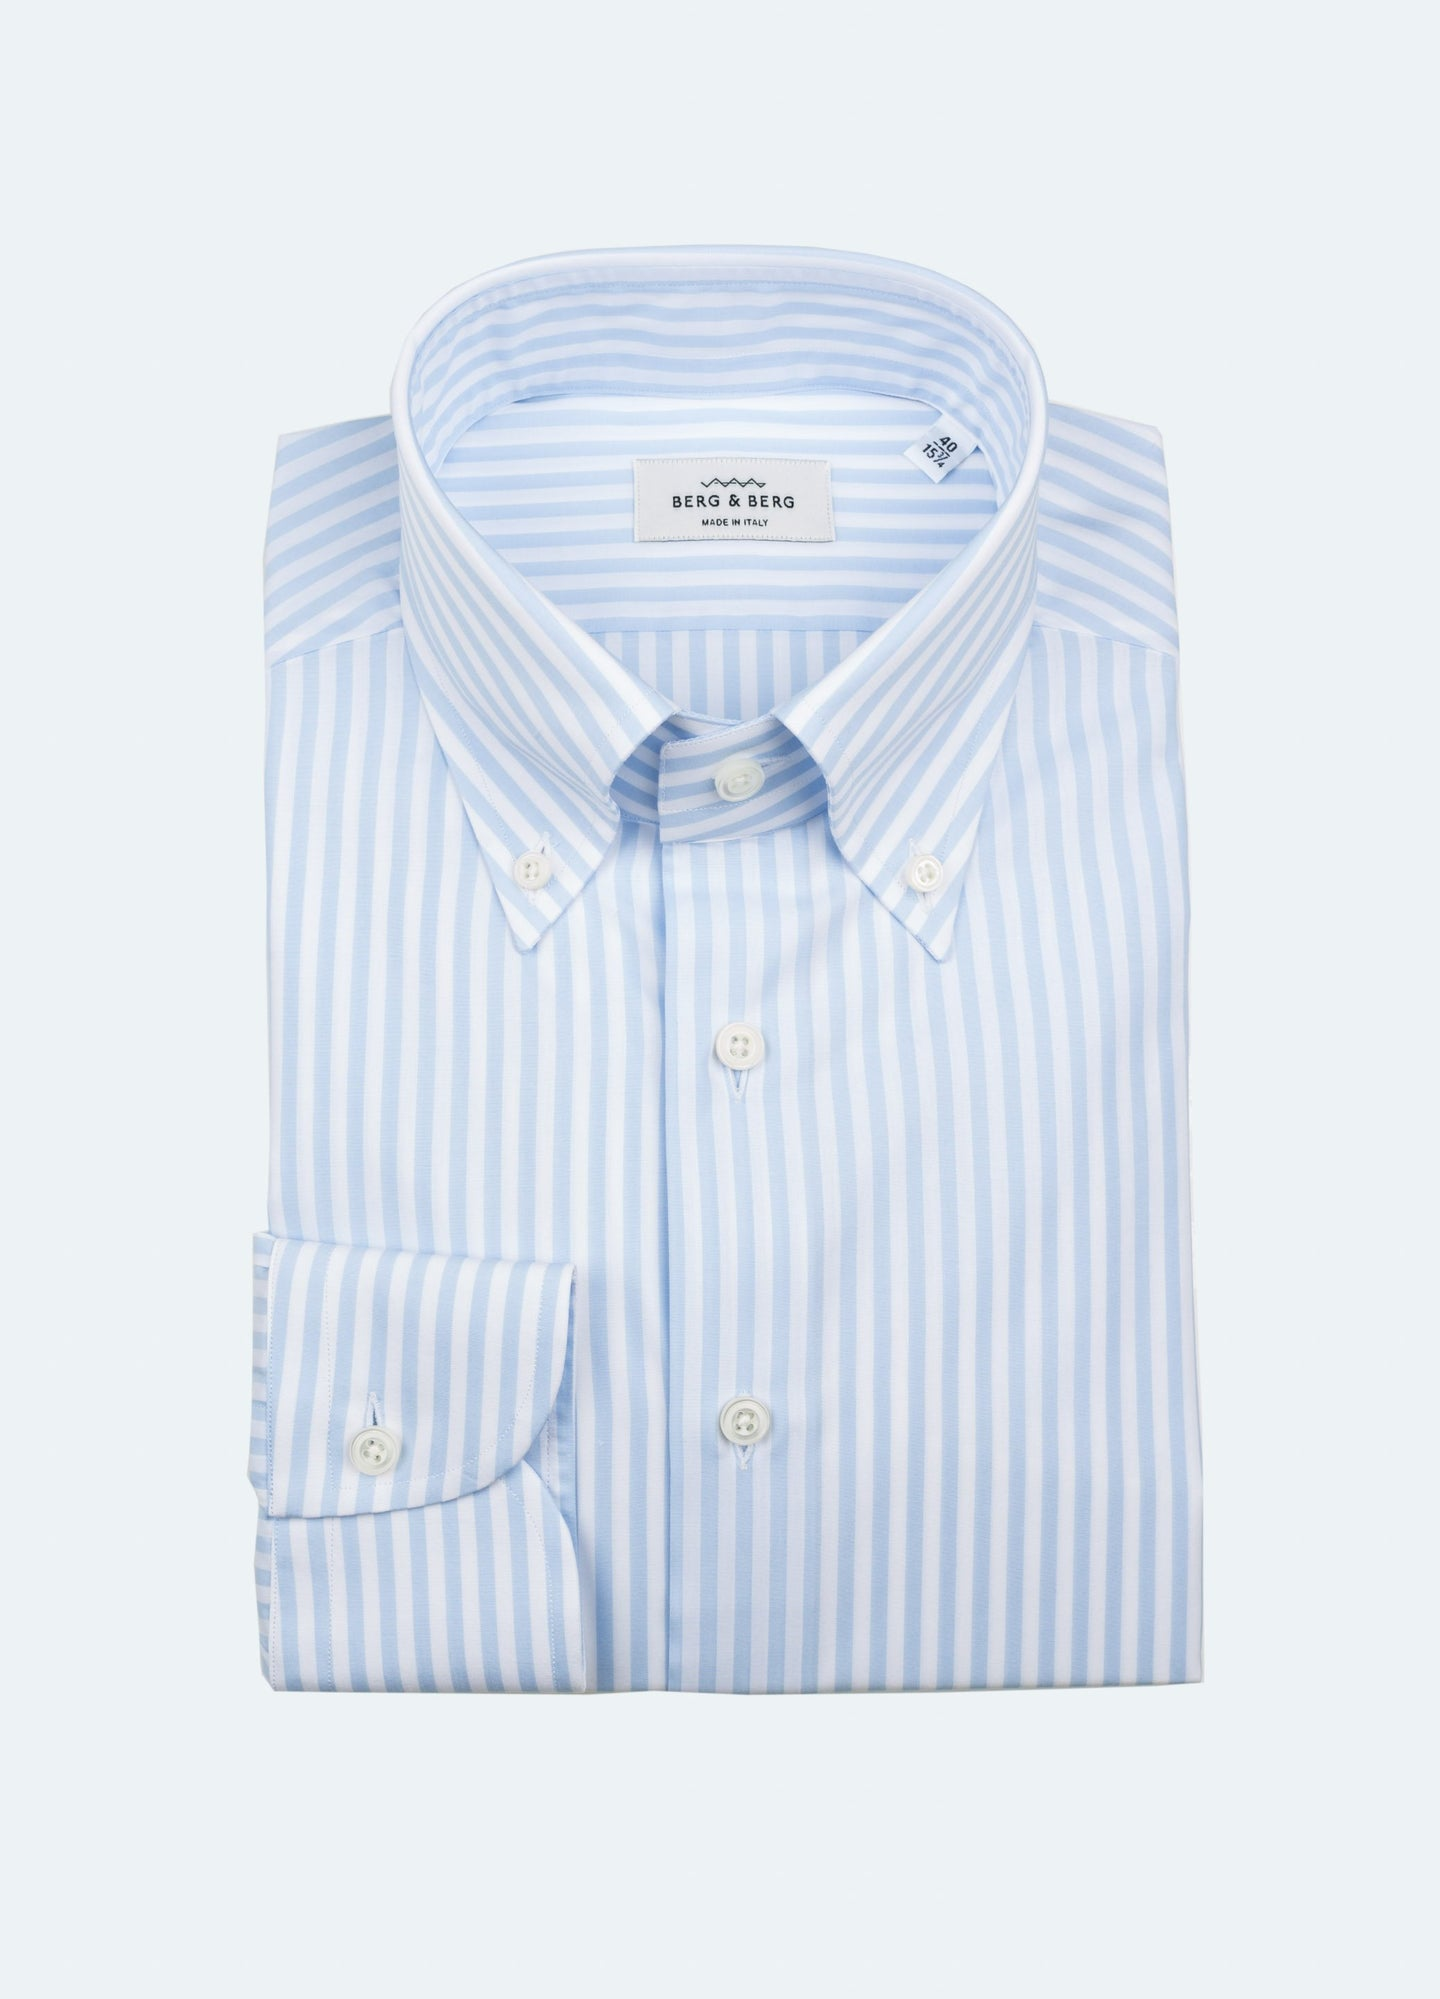 831b766f Filip II Striped Button Down Shirt - White/Blue | Berg&Berg